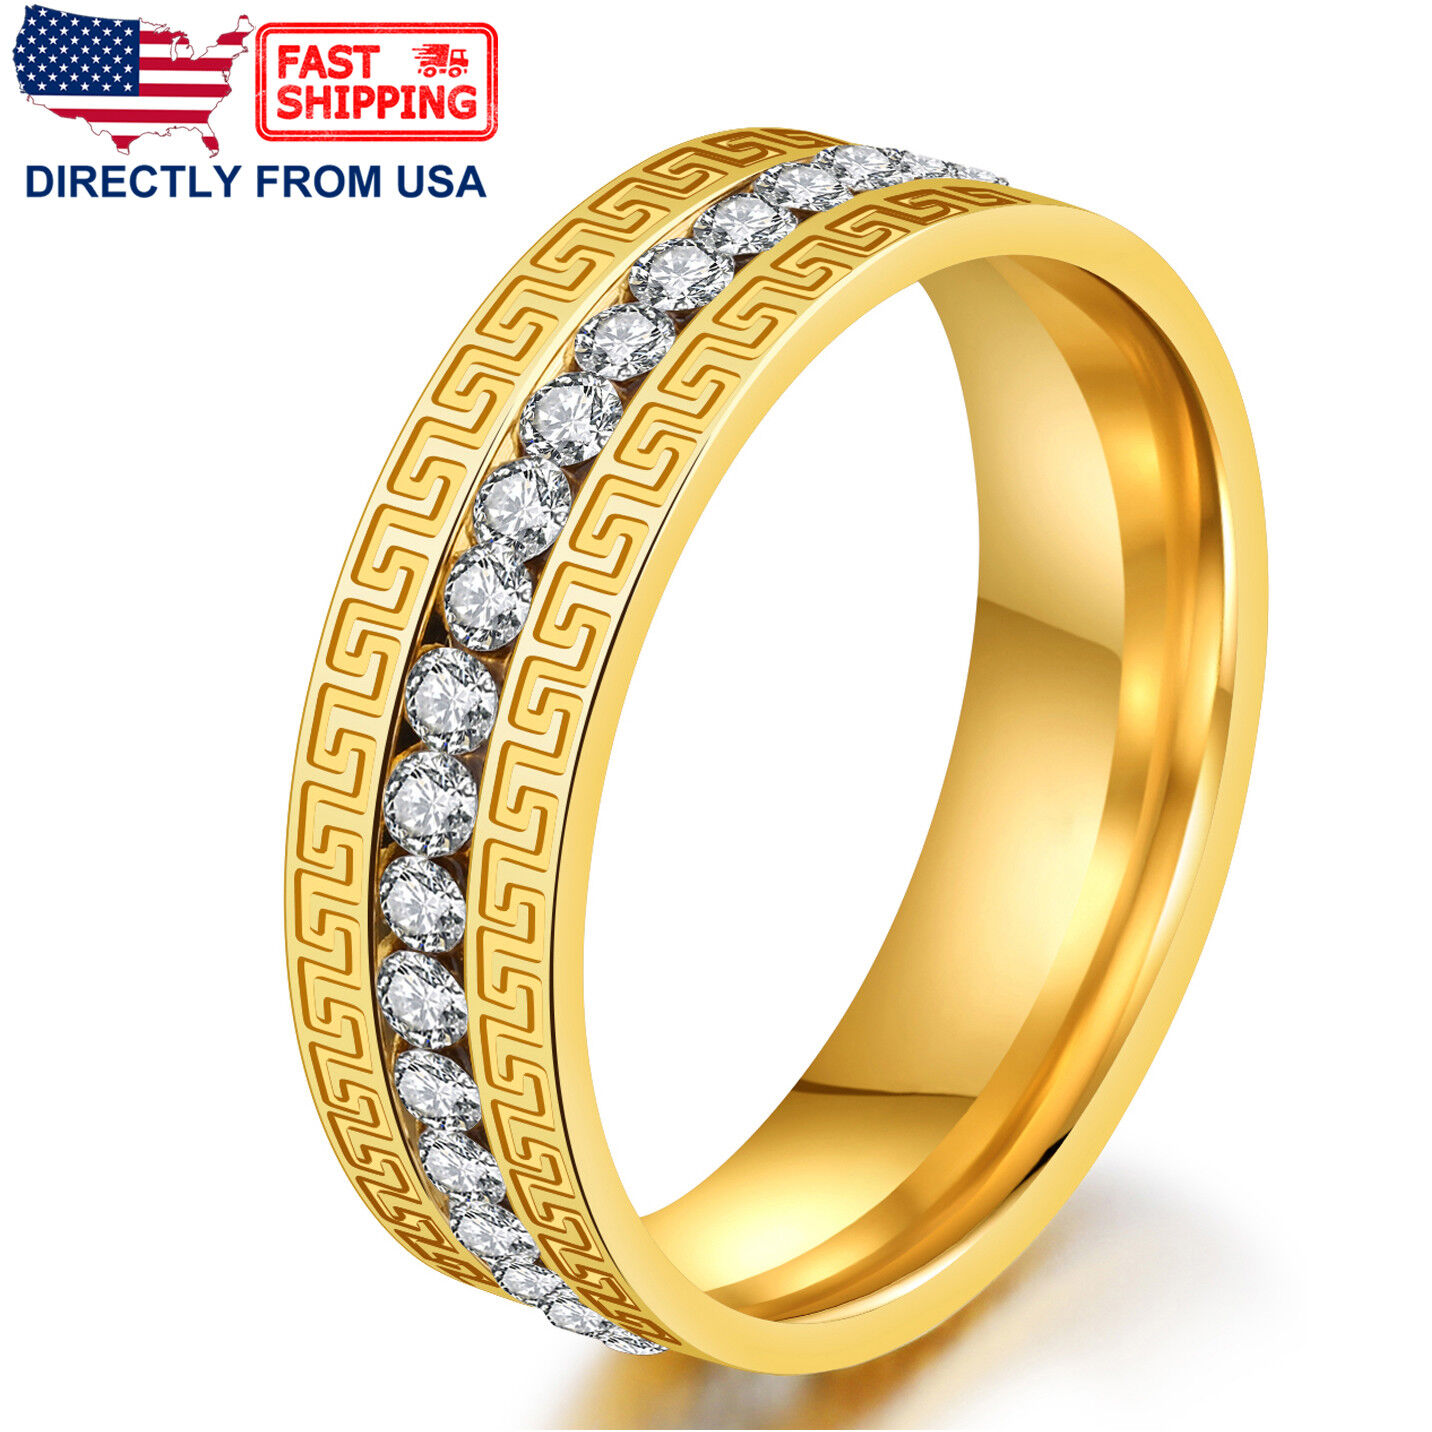 Unisex Ring Stainless Steel Greek Key Cubic Zirconia Comfort Fit Wedding Band Jewelry & Watches